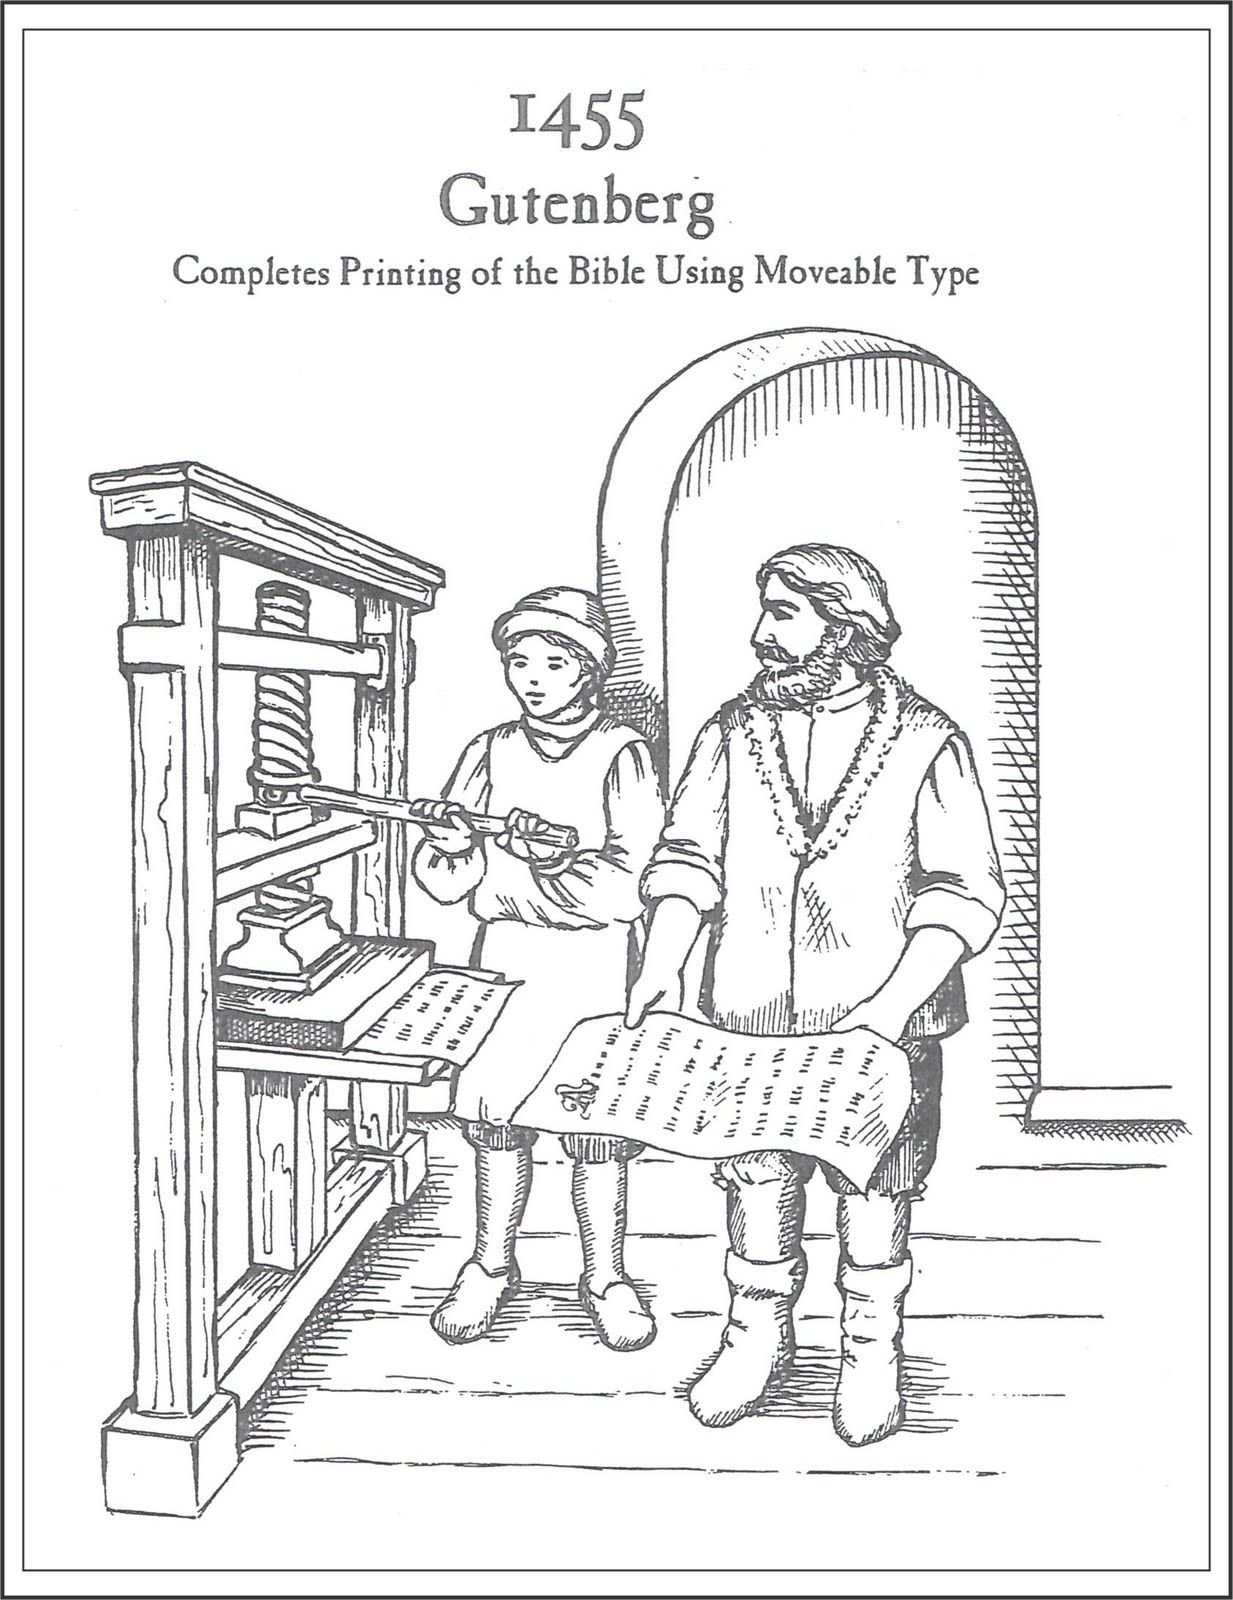 gutenberg printing press diagram as the diagram suggests the